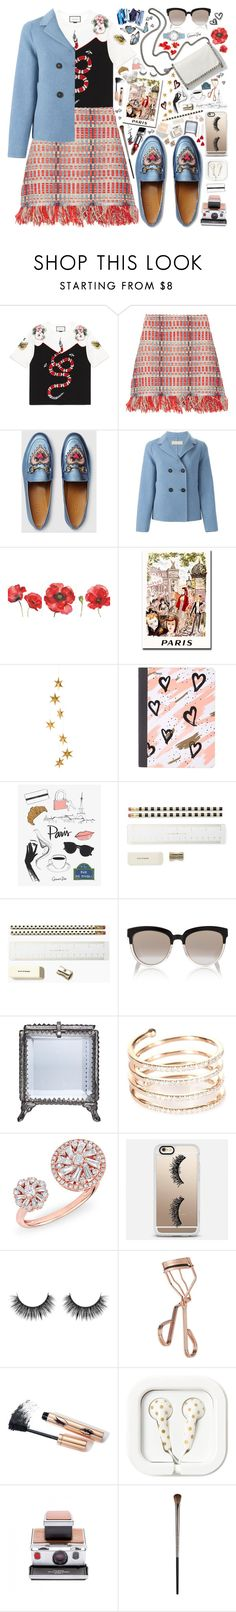 """""""Begin Again"""" by beautifully-eclectic ❤ liked on Polyvore featuring Gucci, Tory Burch, STELLA McCARTNEY, Massimo Alba, WALL, Livingly, Mead, Kate Spade, Christian Dior and Home Decorators Collection"""